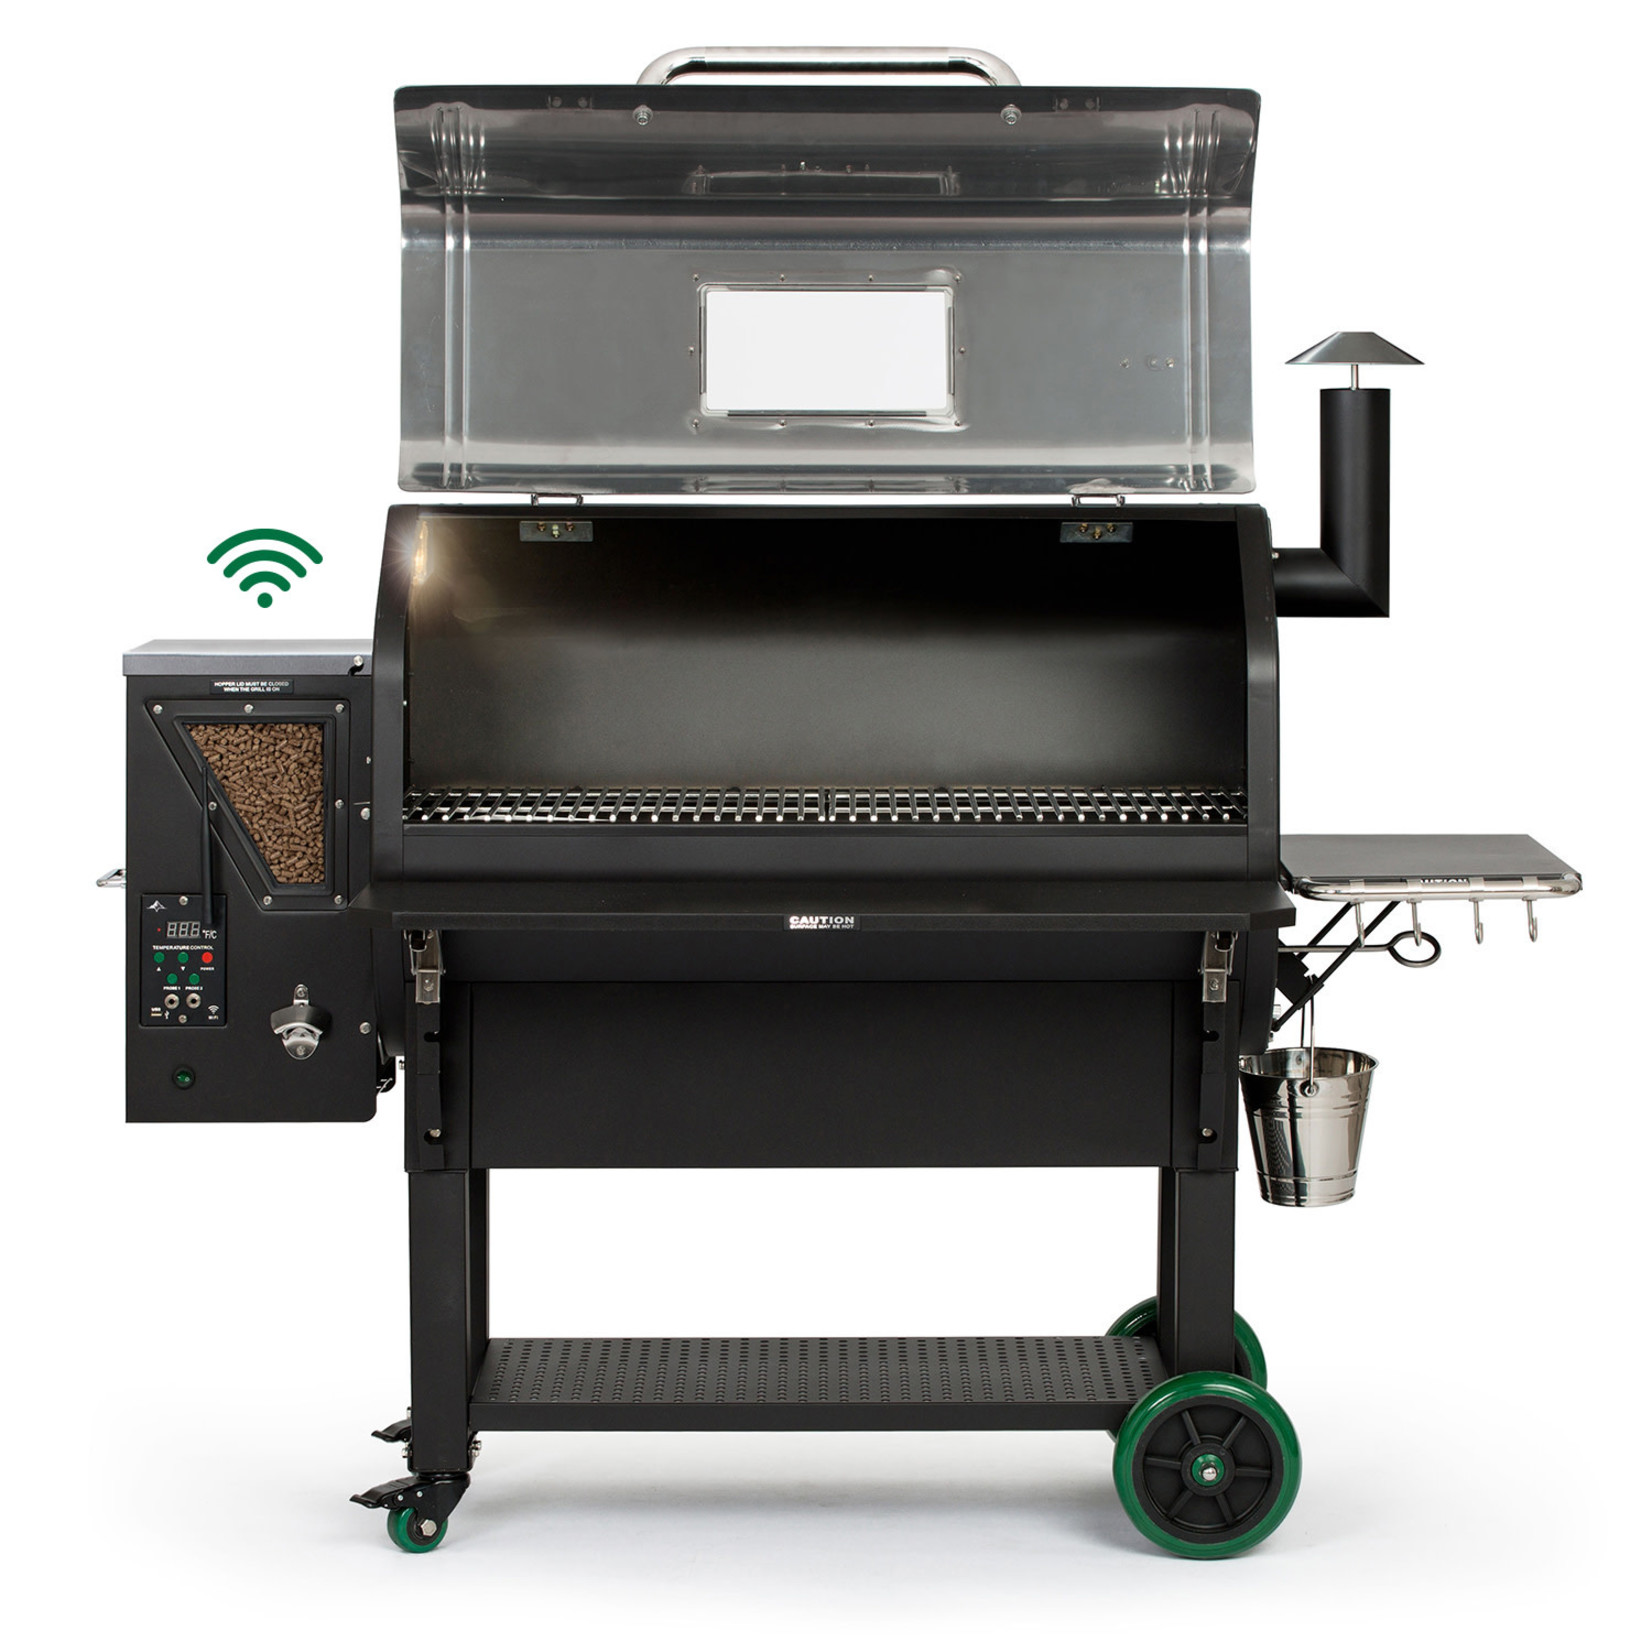 Green Mountain Grill Green Mountain Grill Peak Prime pellet grill wifi verlichting  RVS